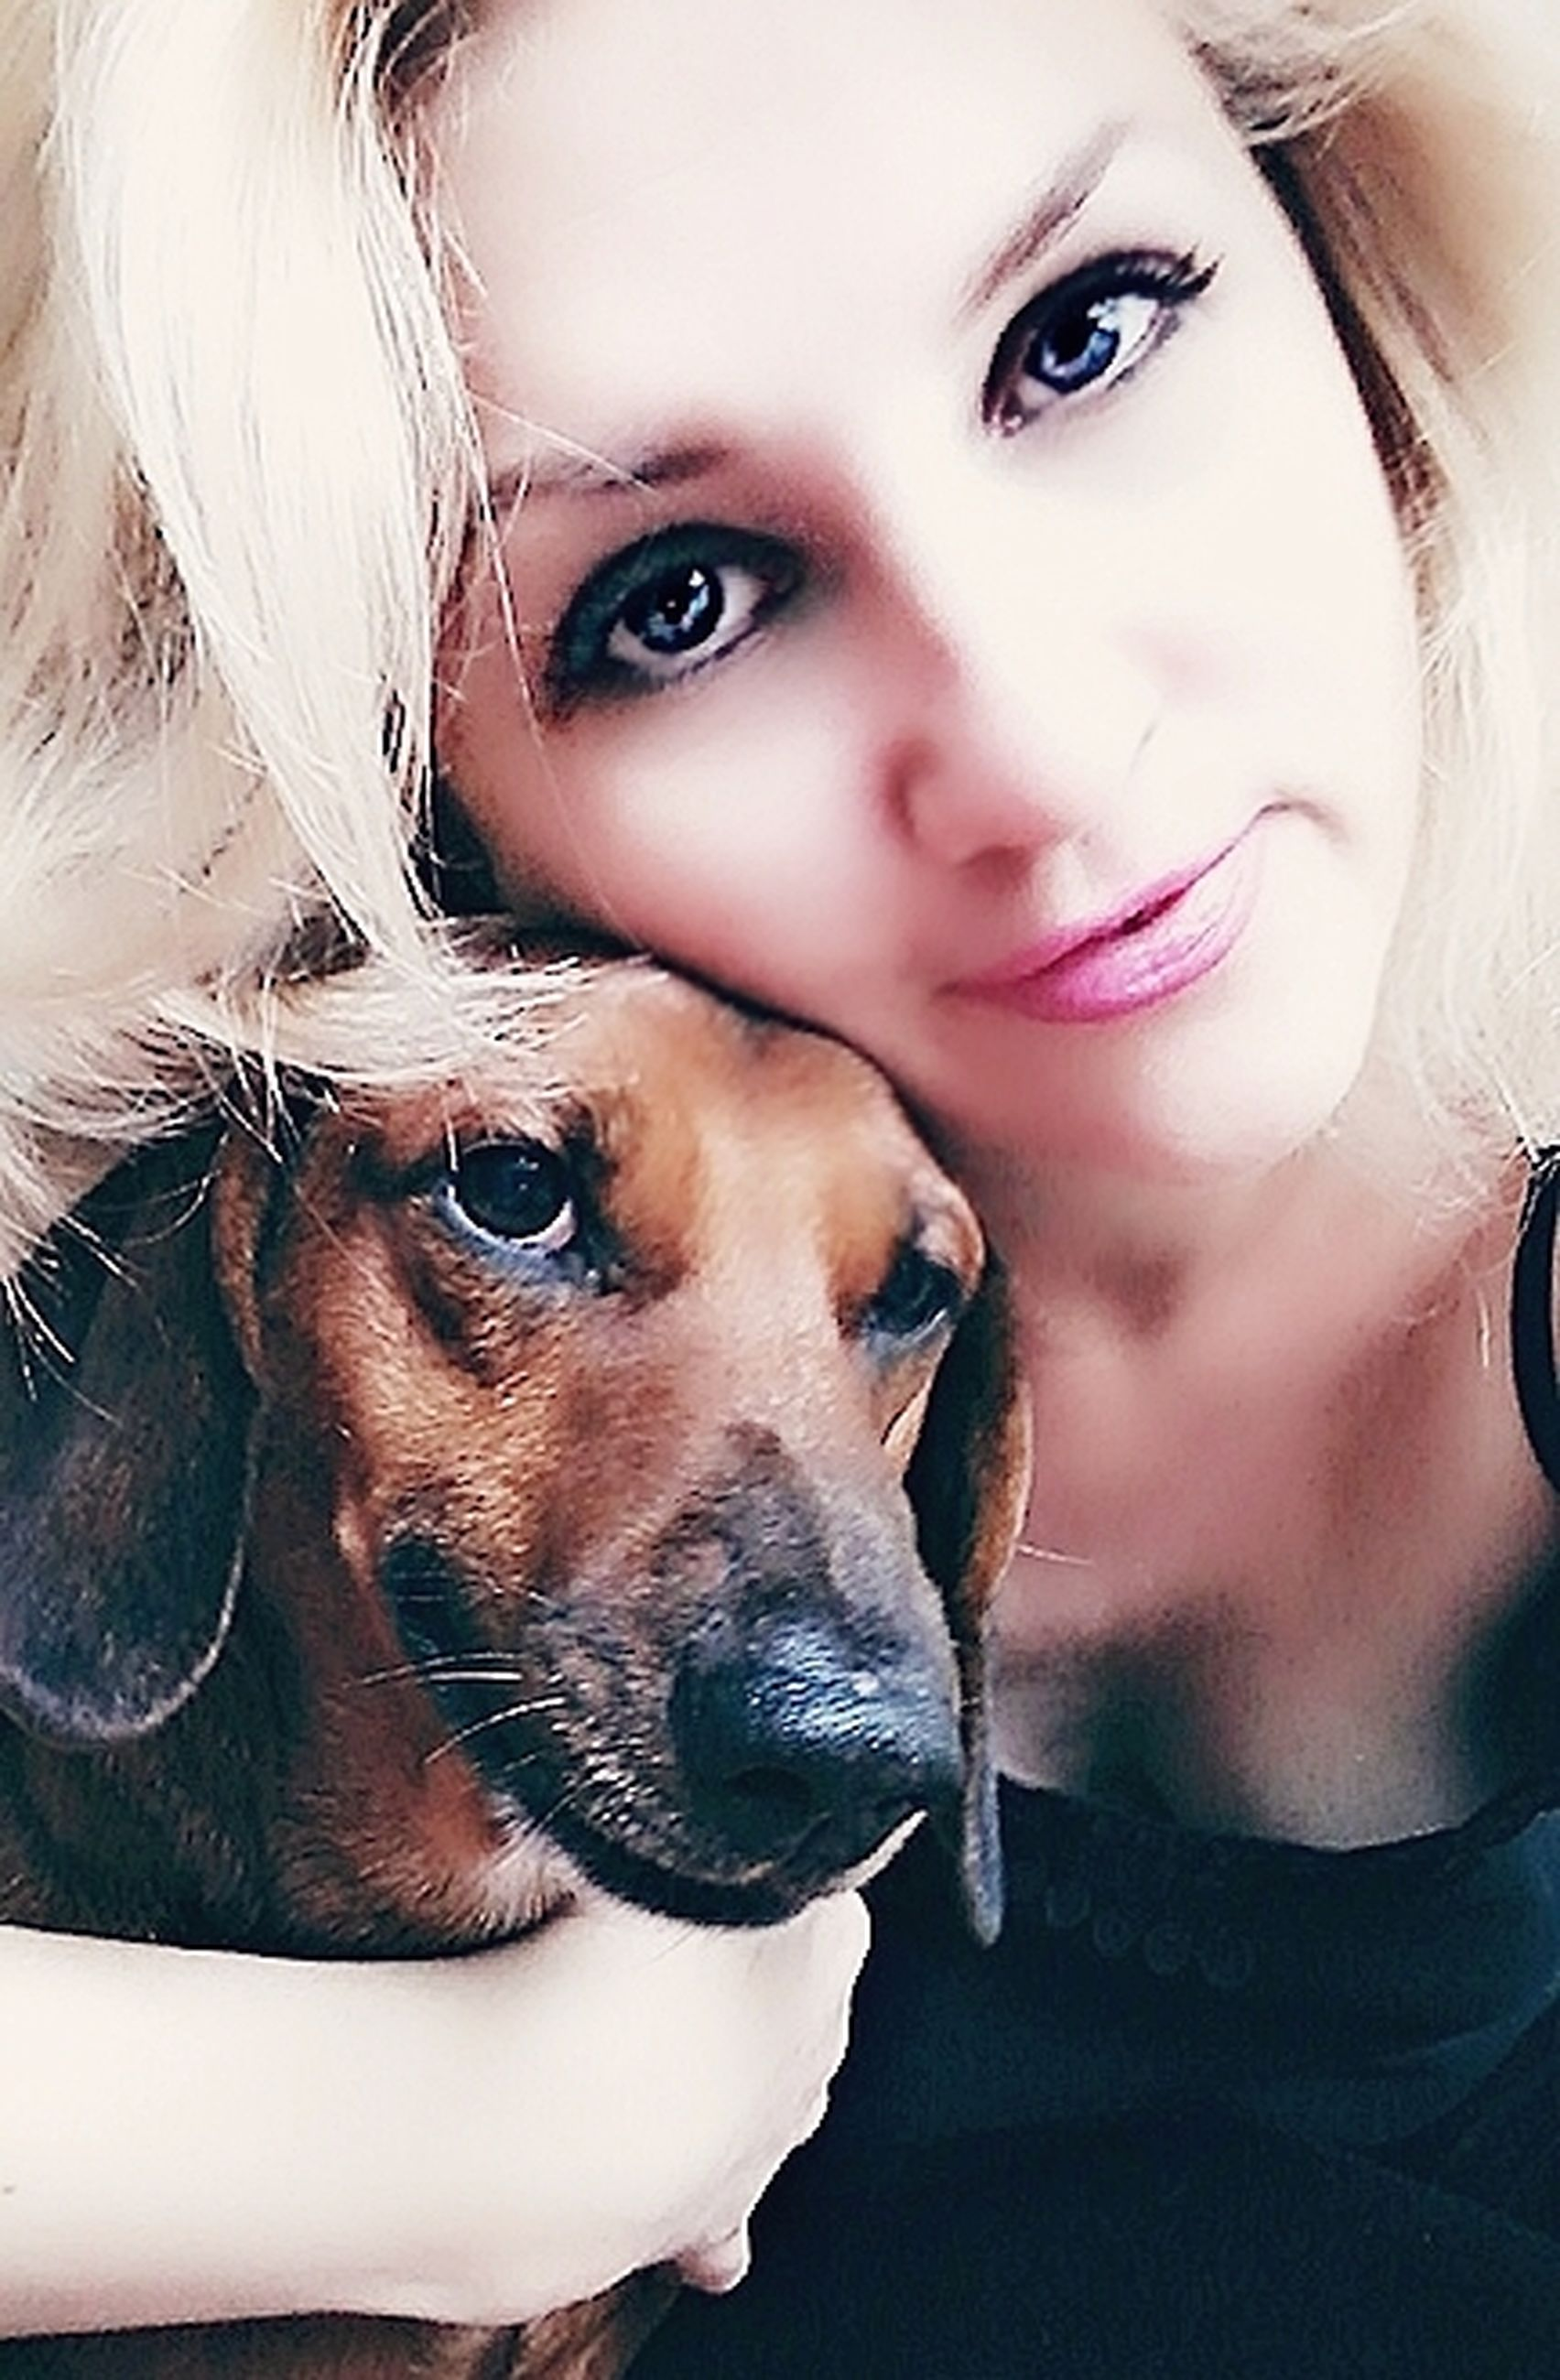 canine, dog, pets, one animal, domestic, domestic animals, mammal, portrait, real people, looking at camera, one person, headshot, vertebrate, young adult, leisure activity, young women, pet owner, positive emotion, teenager